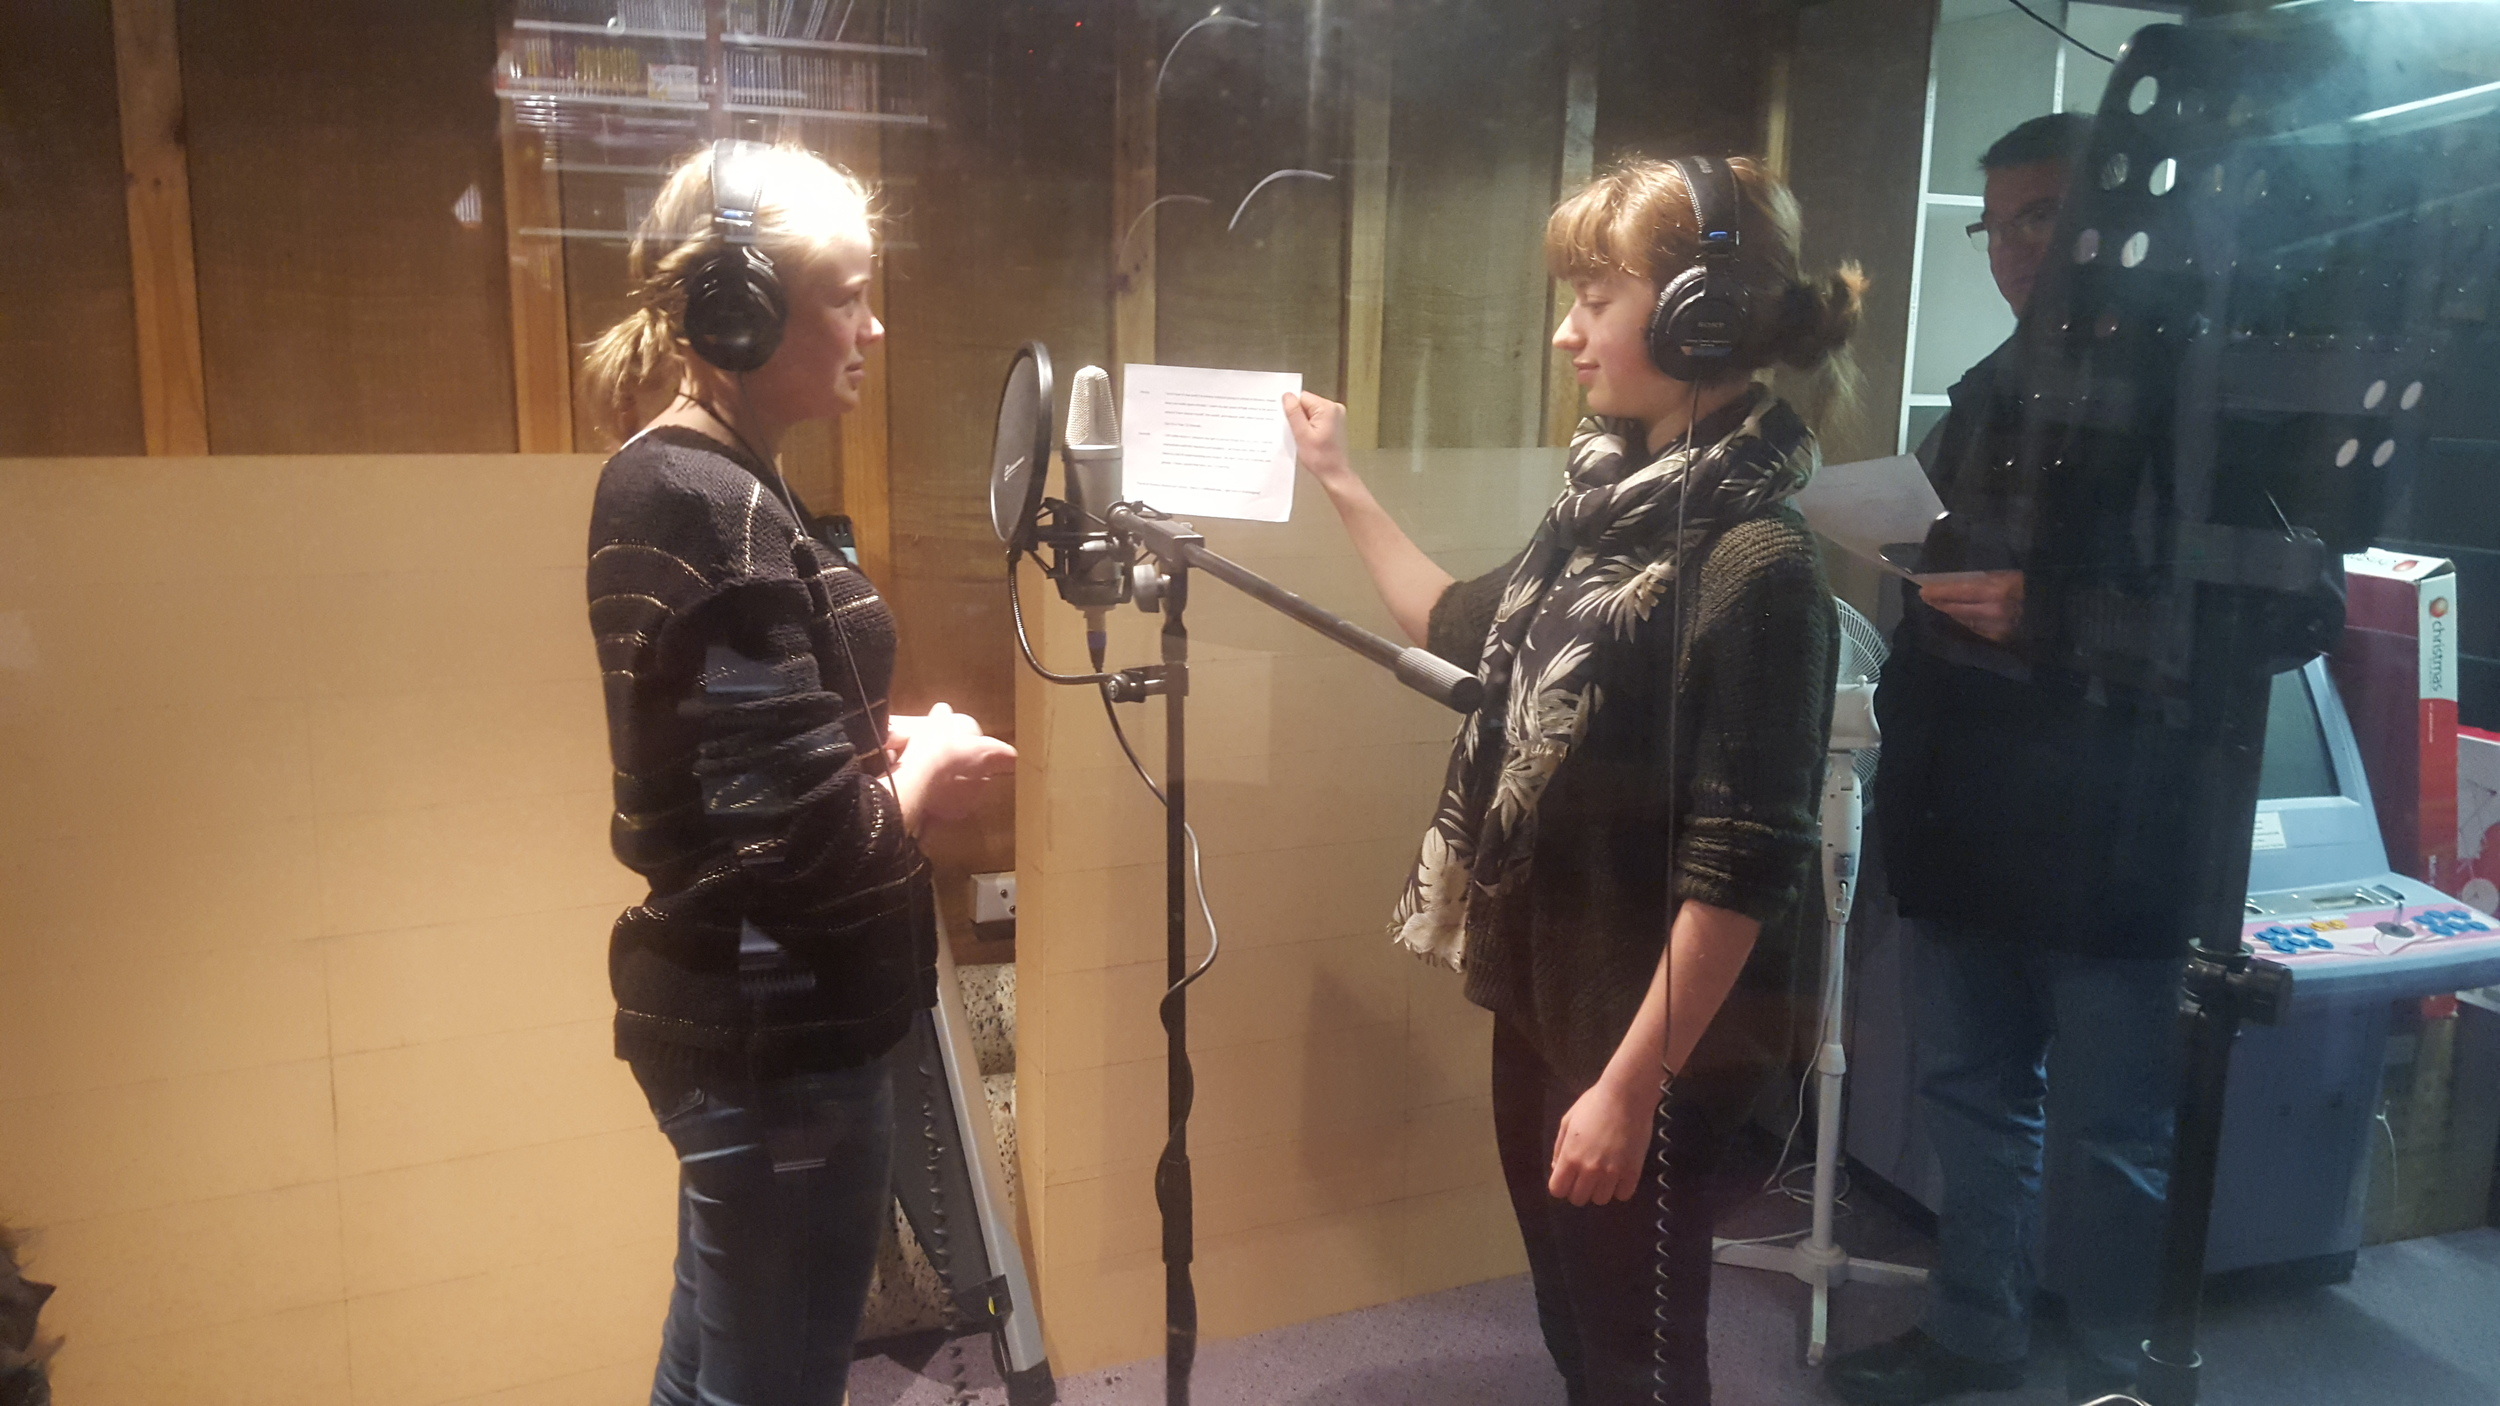 Kirrily and Hannah in the i98 recording studio